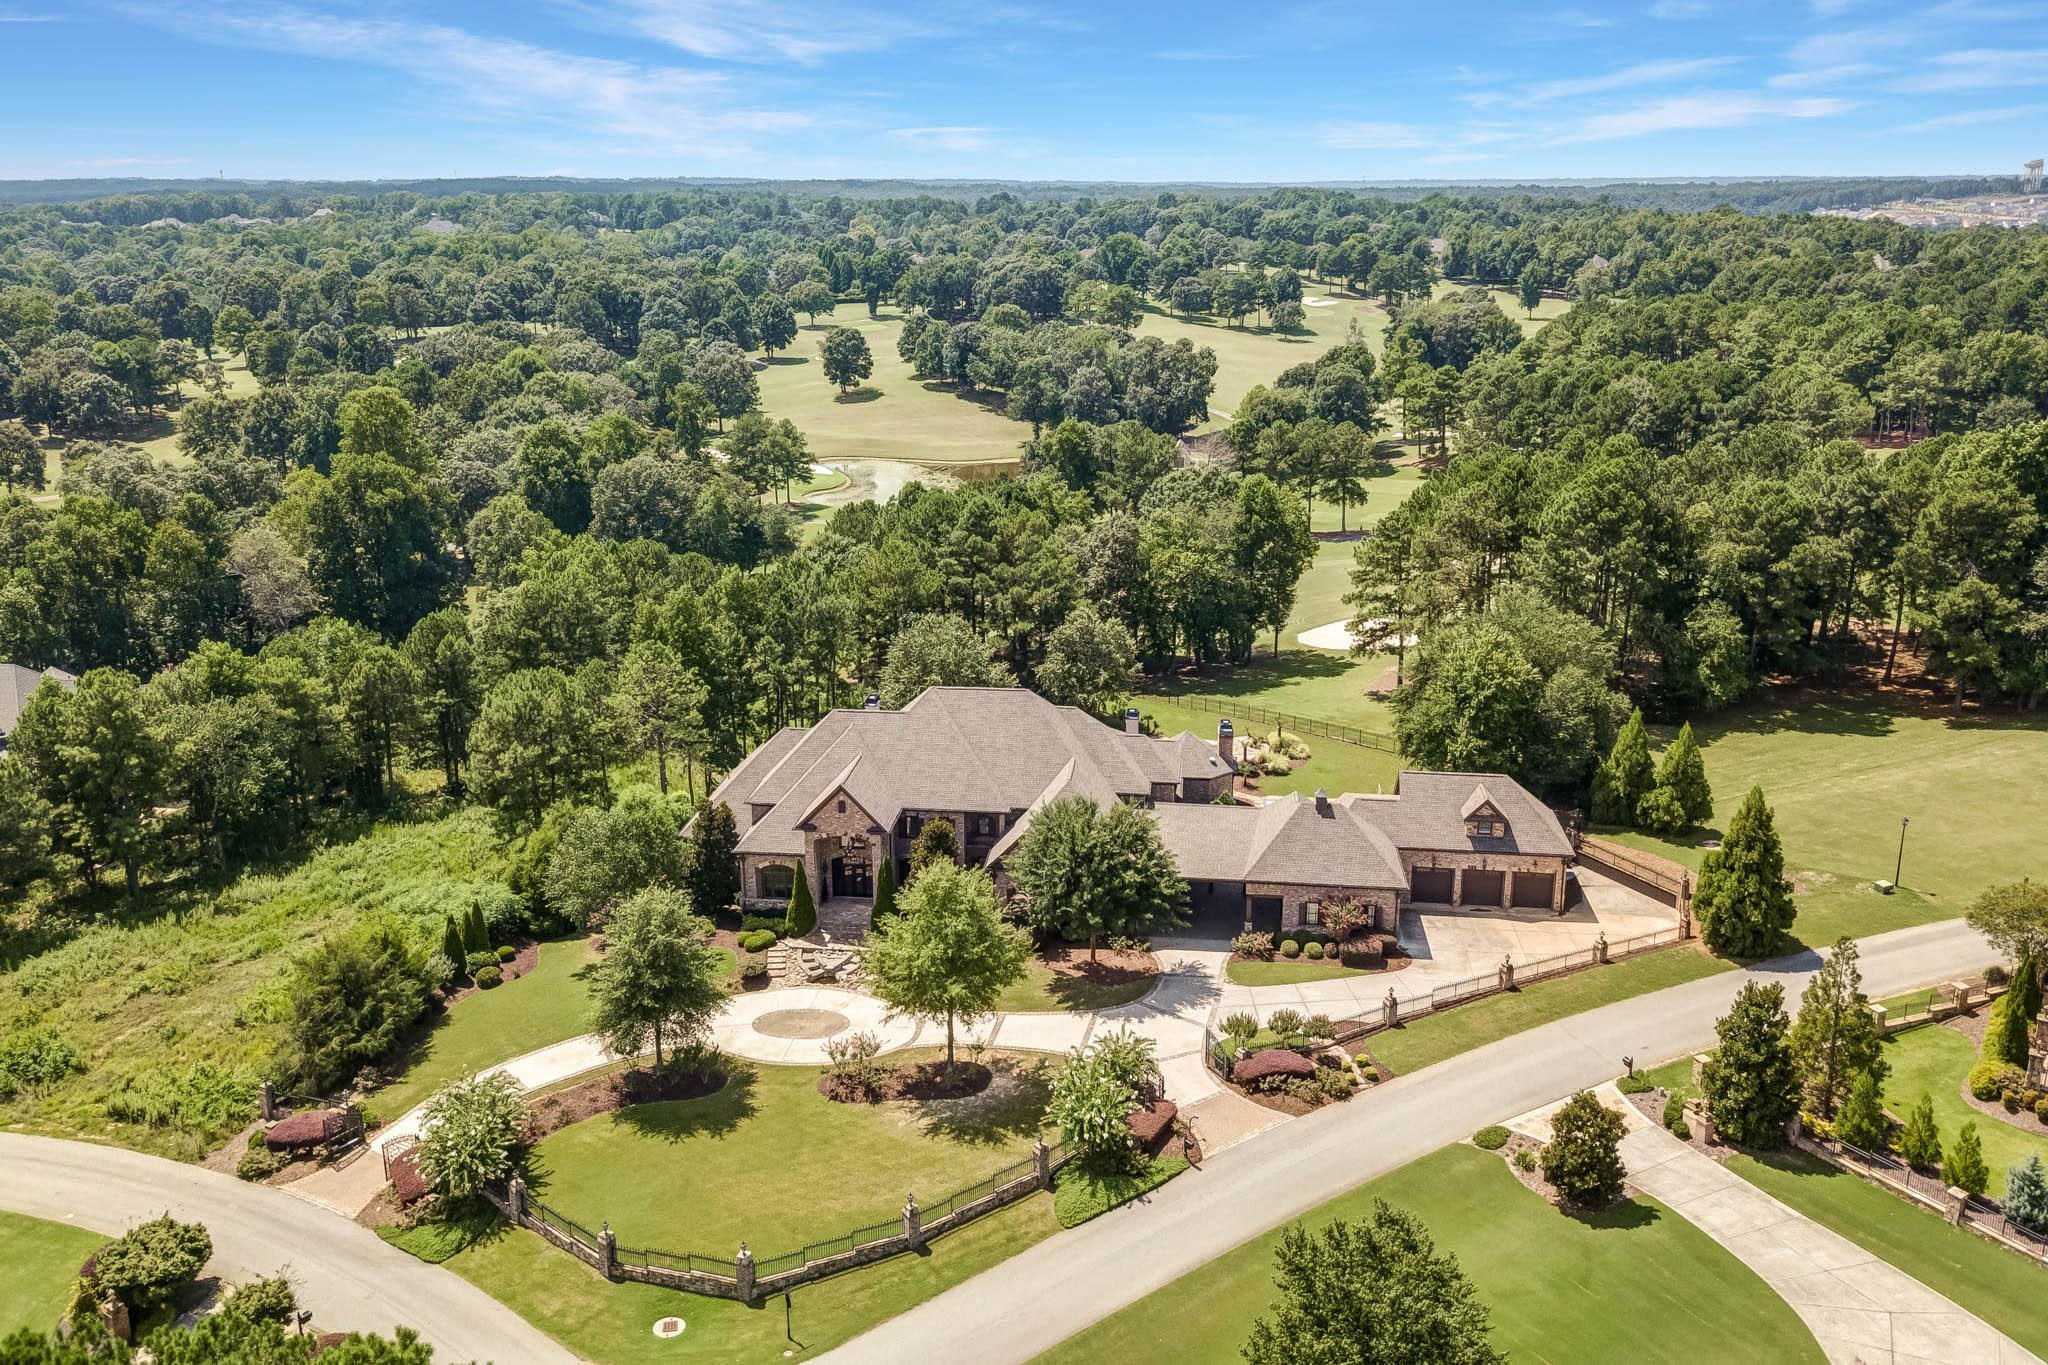 real_estate_photographer_aerial_photography-7.jpg